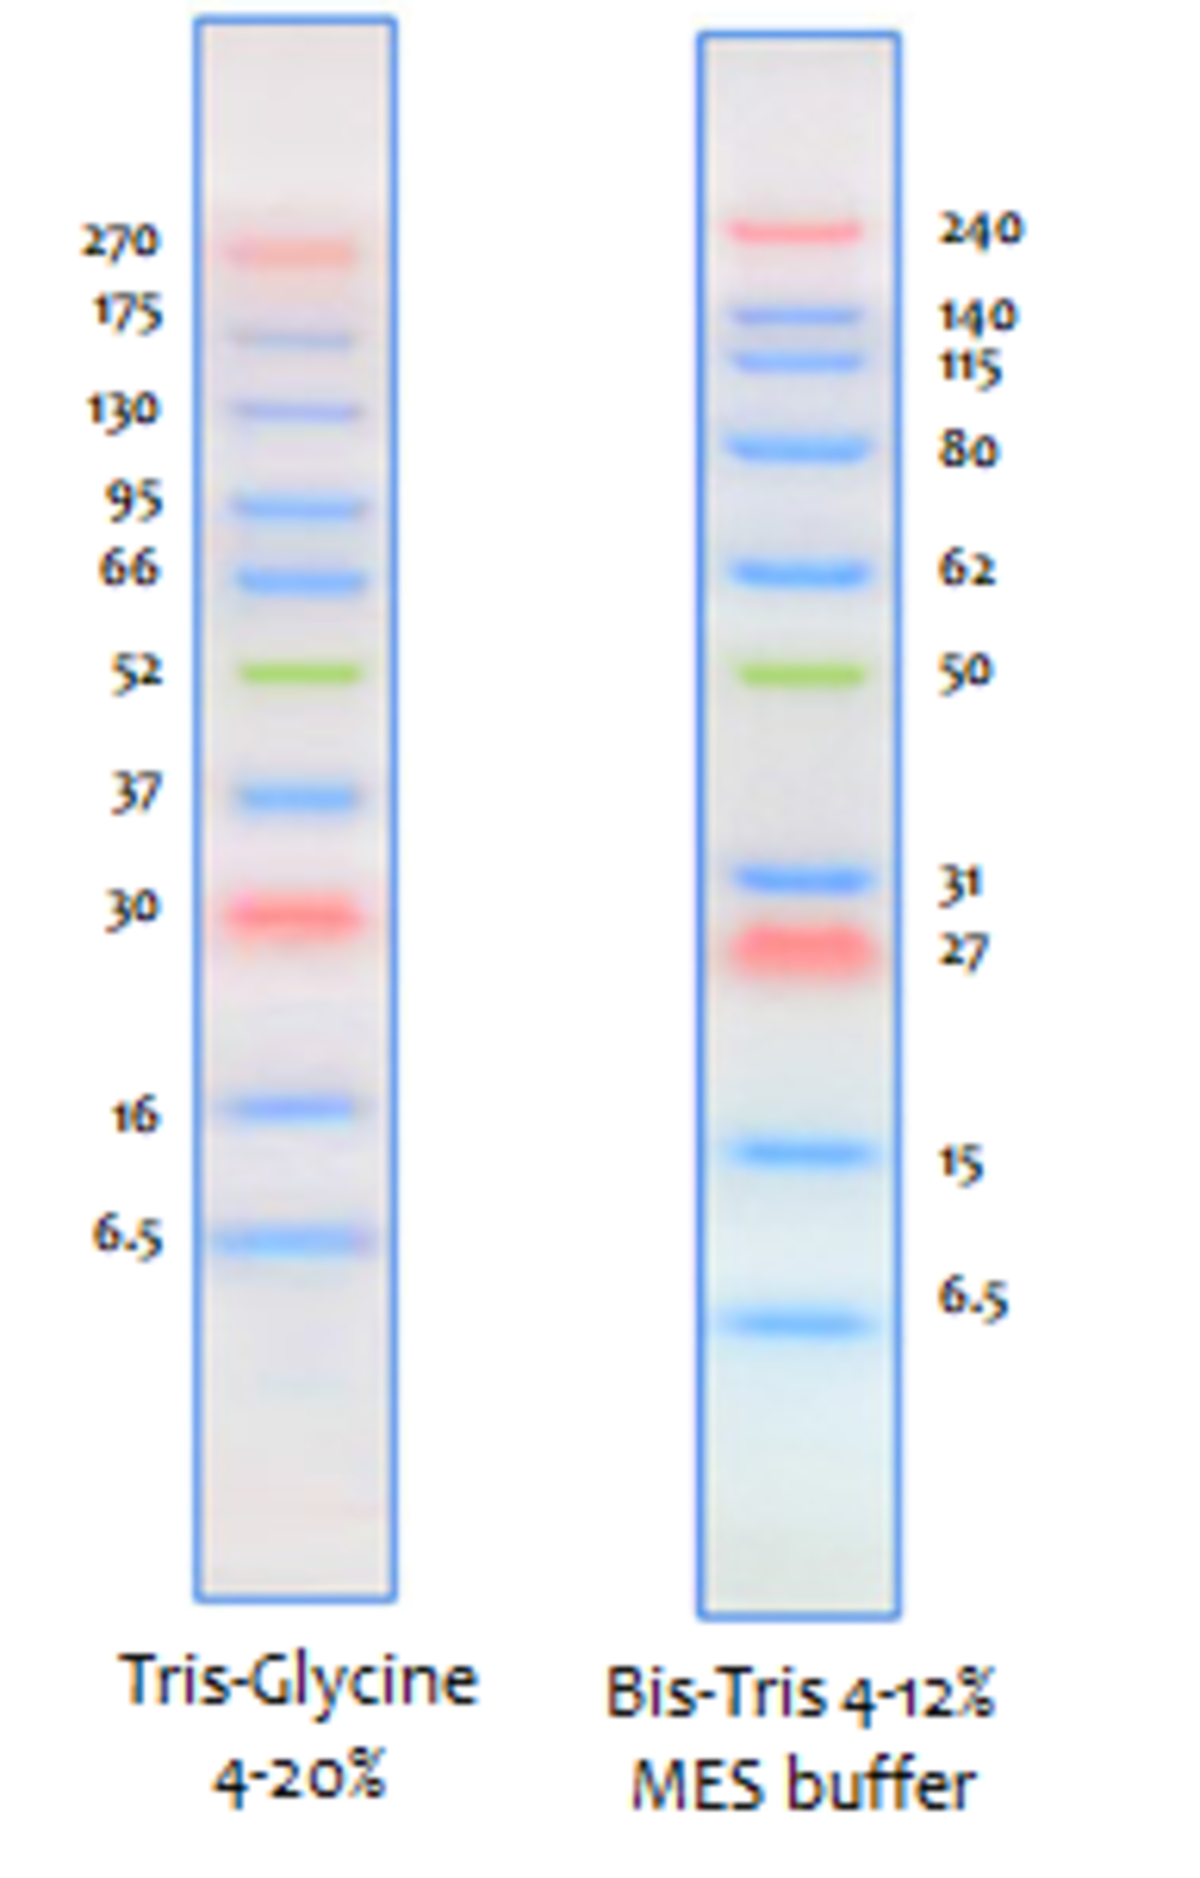 AcuteBand Prestained Protein Ladder